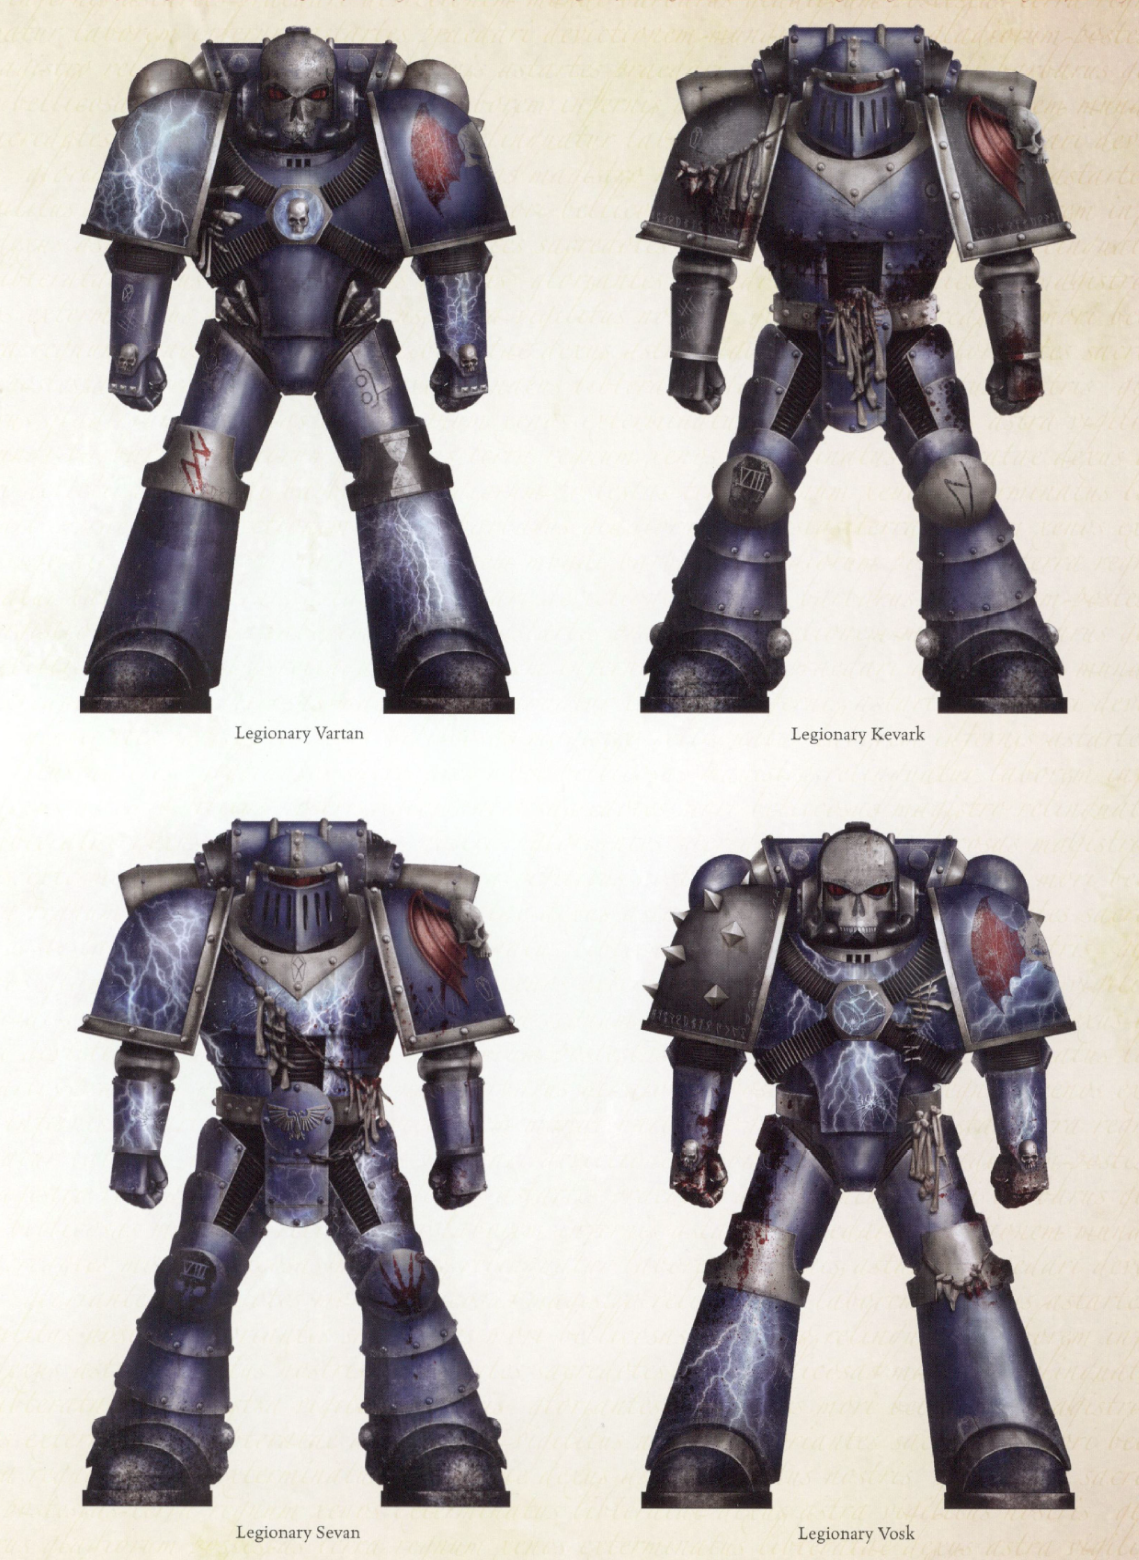 Night Lords Horus Heresy Pictures Image Warhammer 40k